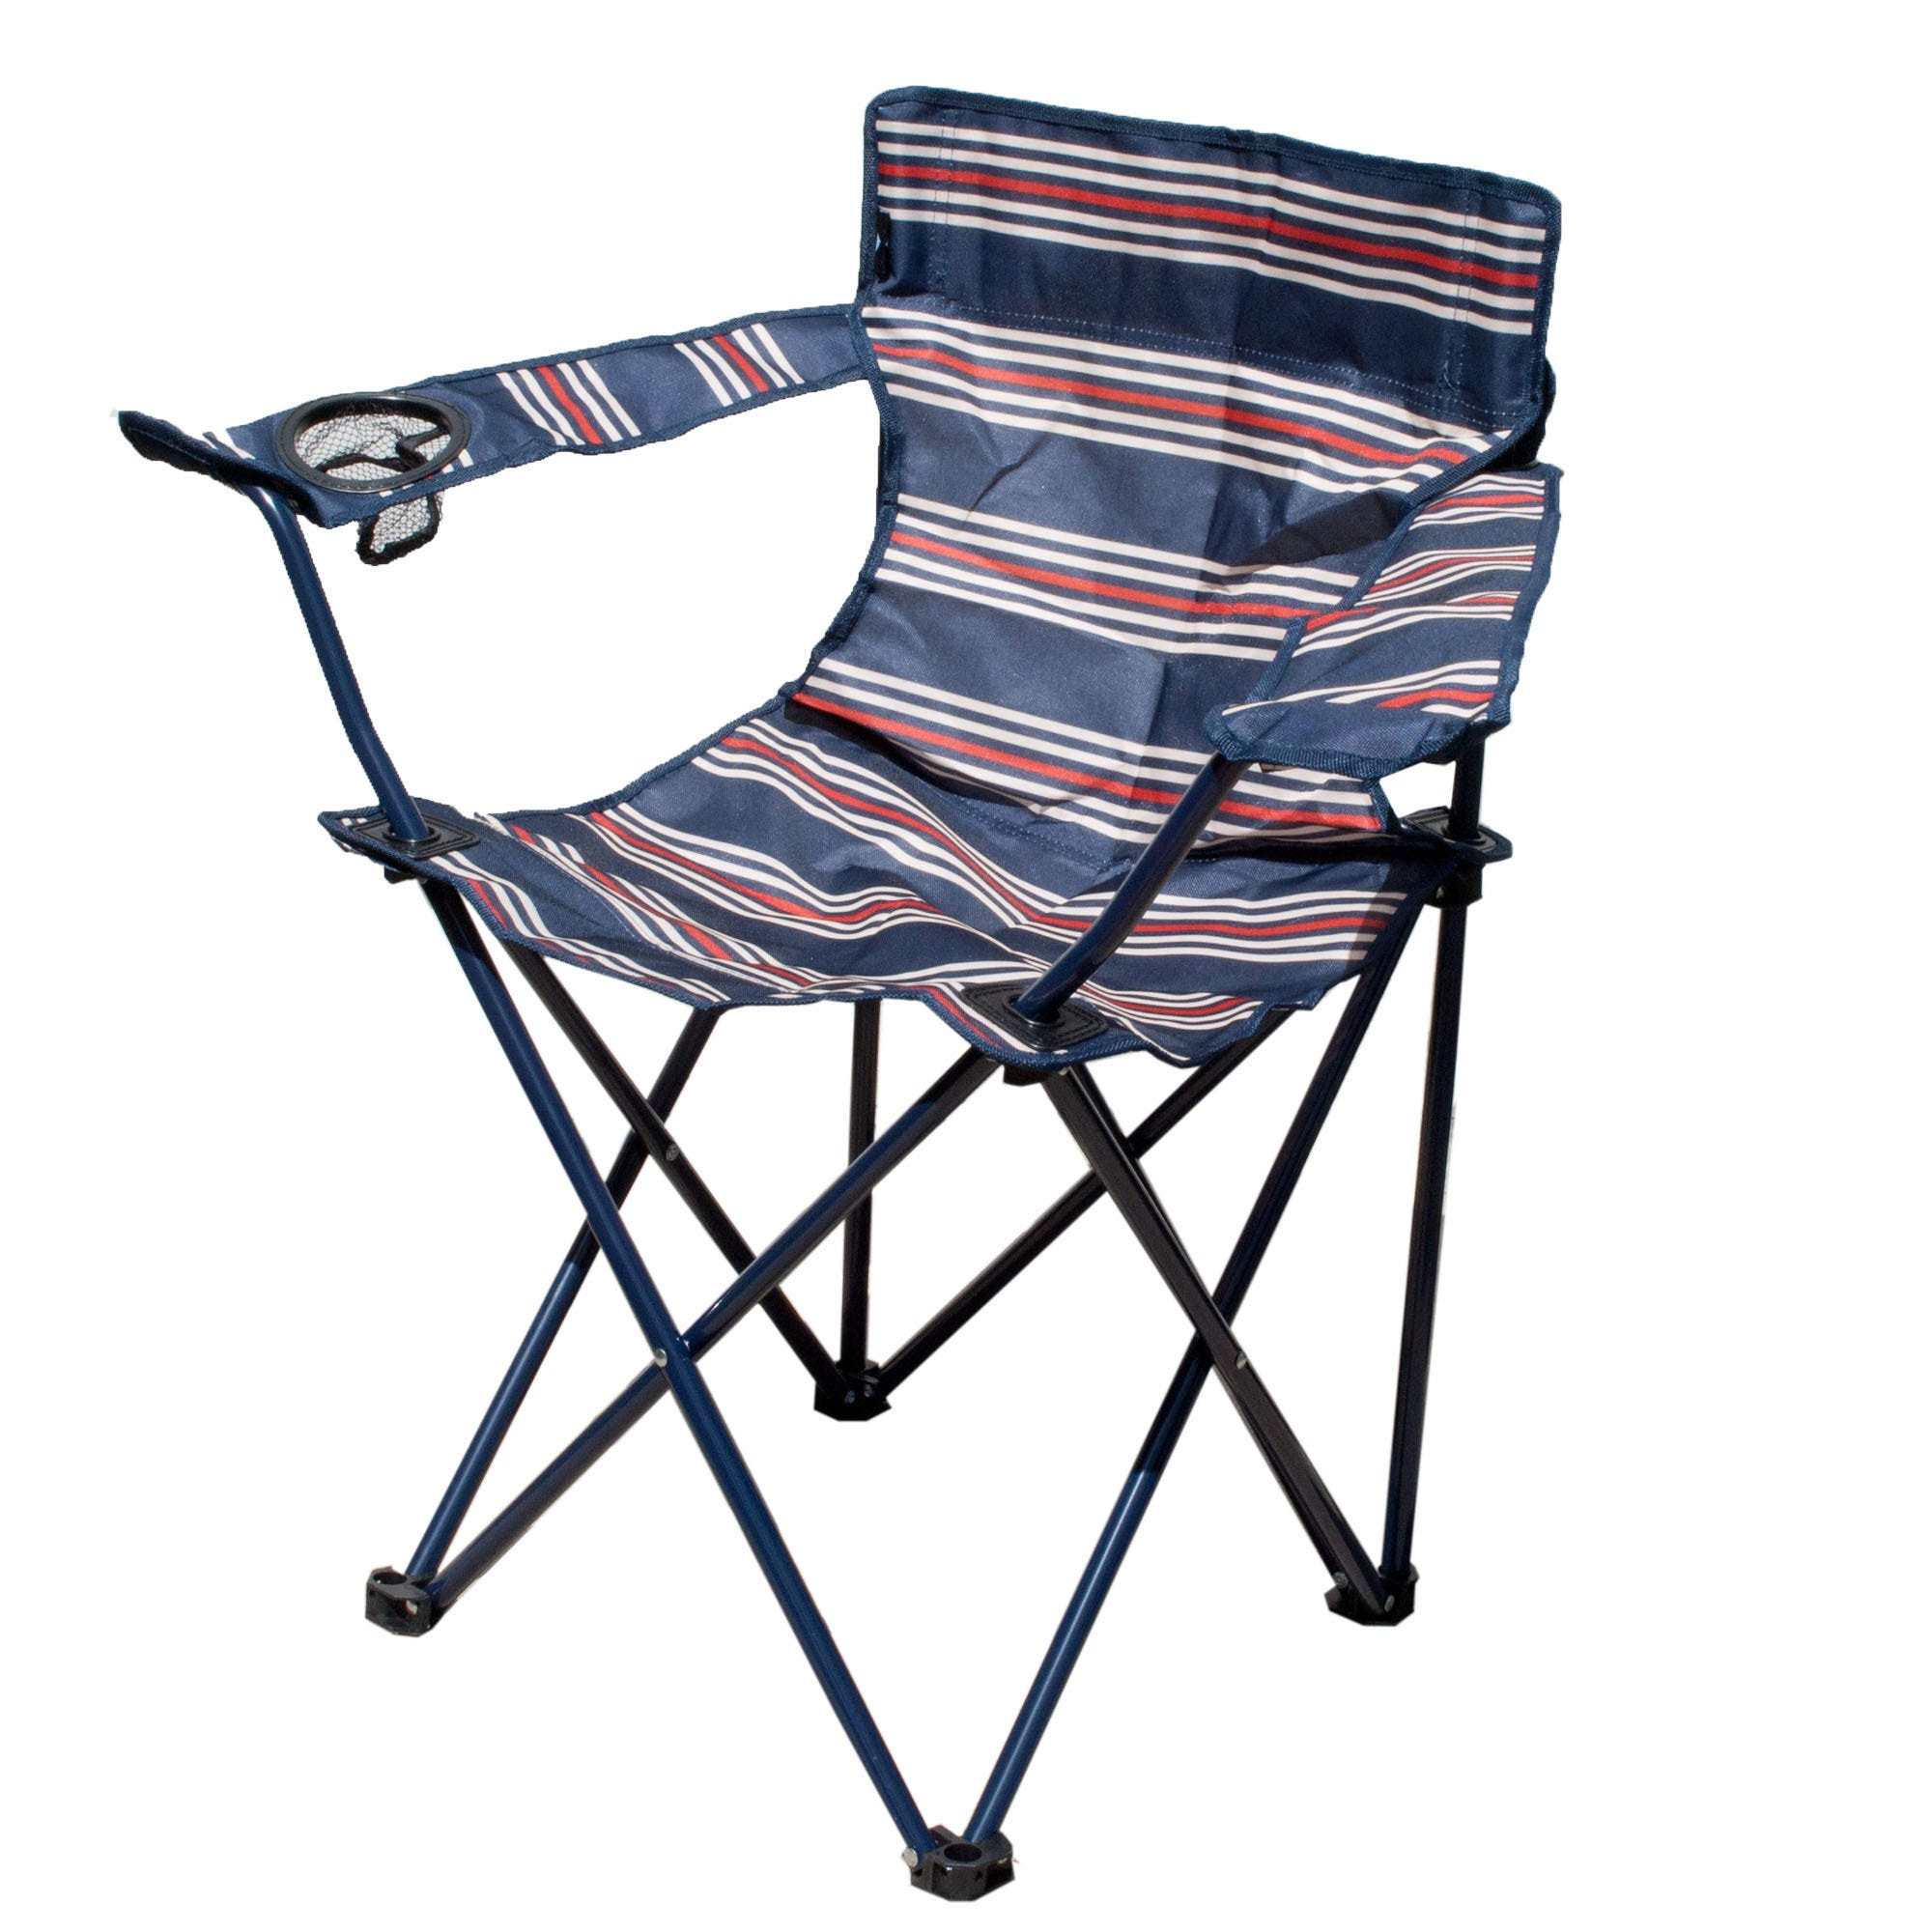 Ozark Trail Youth Outdoor Folding CHAIR- Qty 4